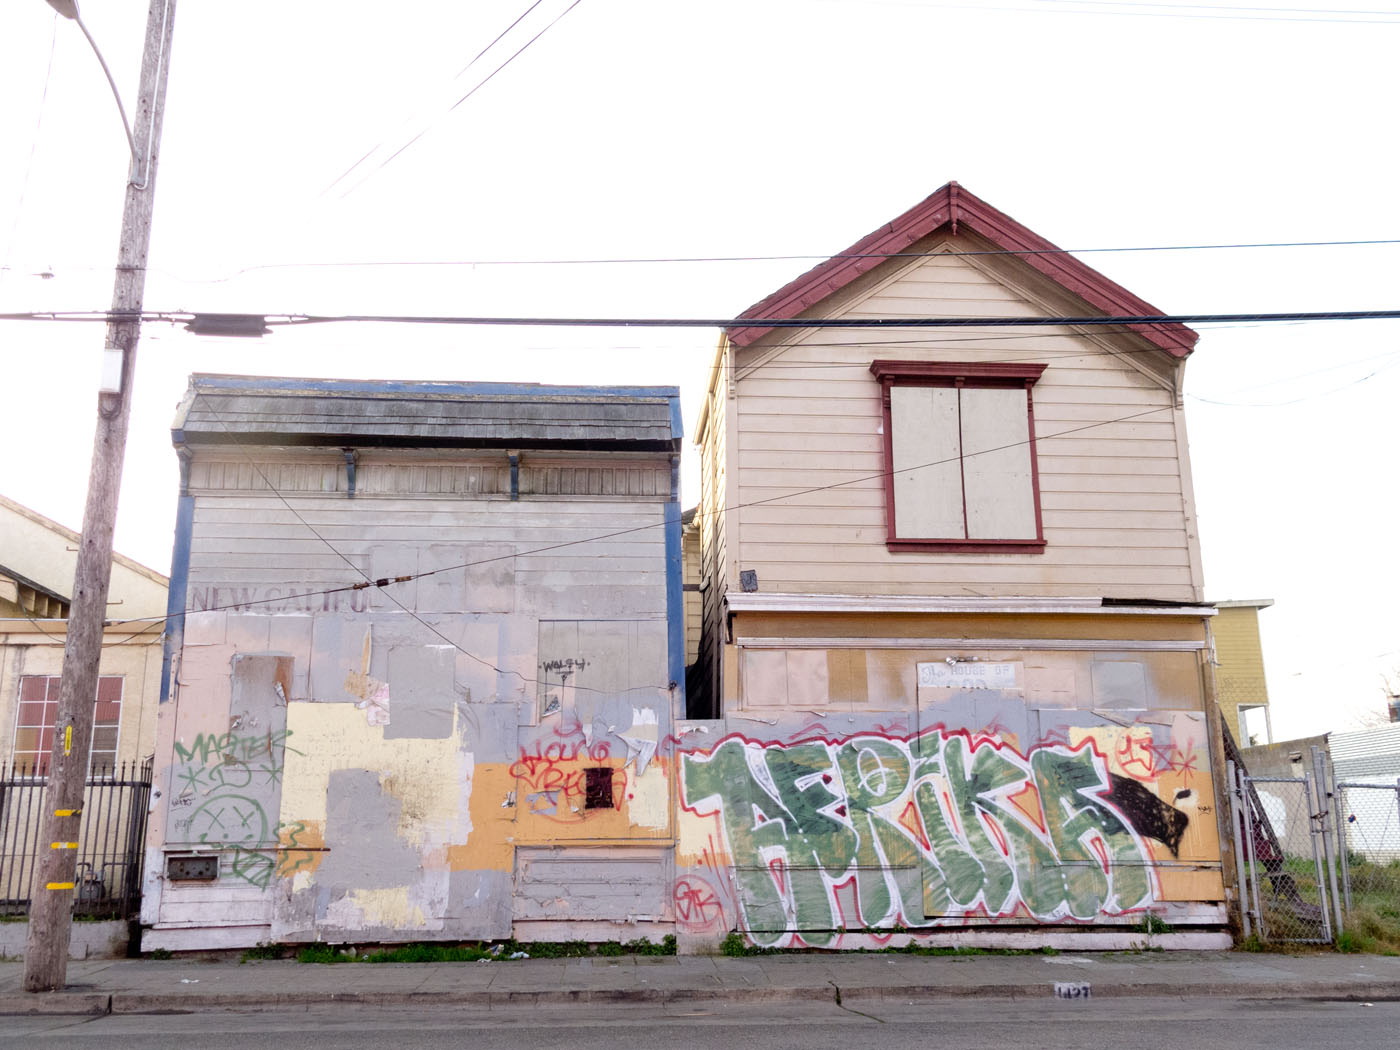 The New California Barber Shop and the House Of God Spiritual Temple, Dogtown, Oakland, early 2012.